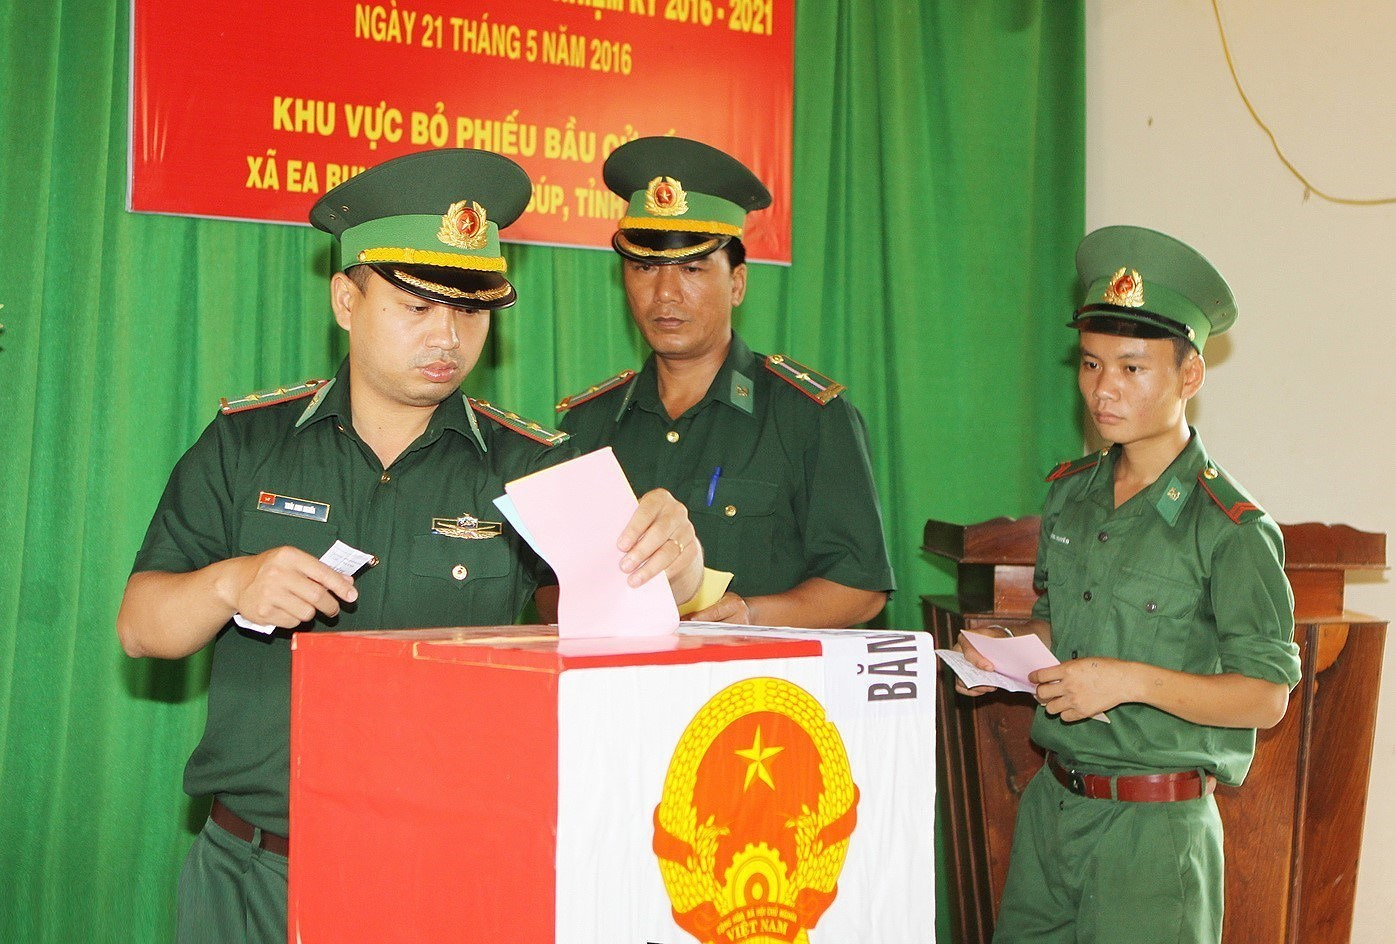 Election Day – festive day of all people hinh anh 3